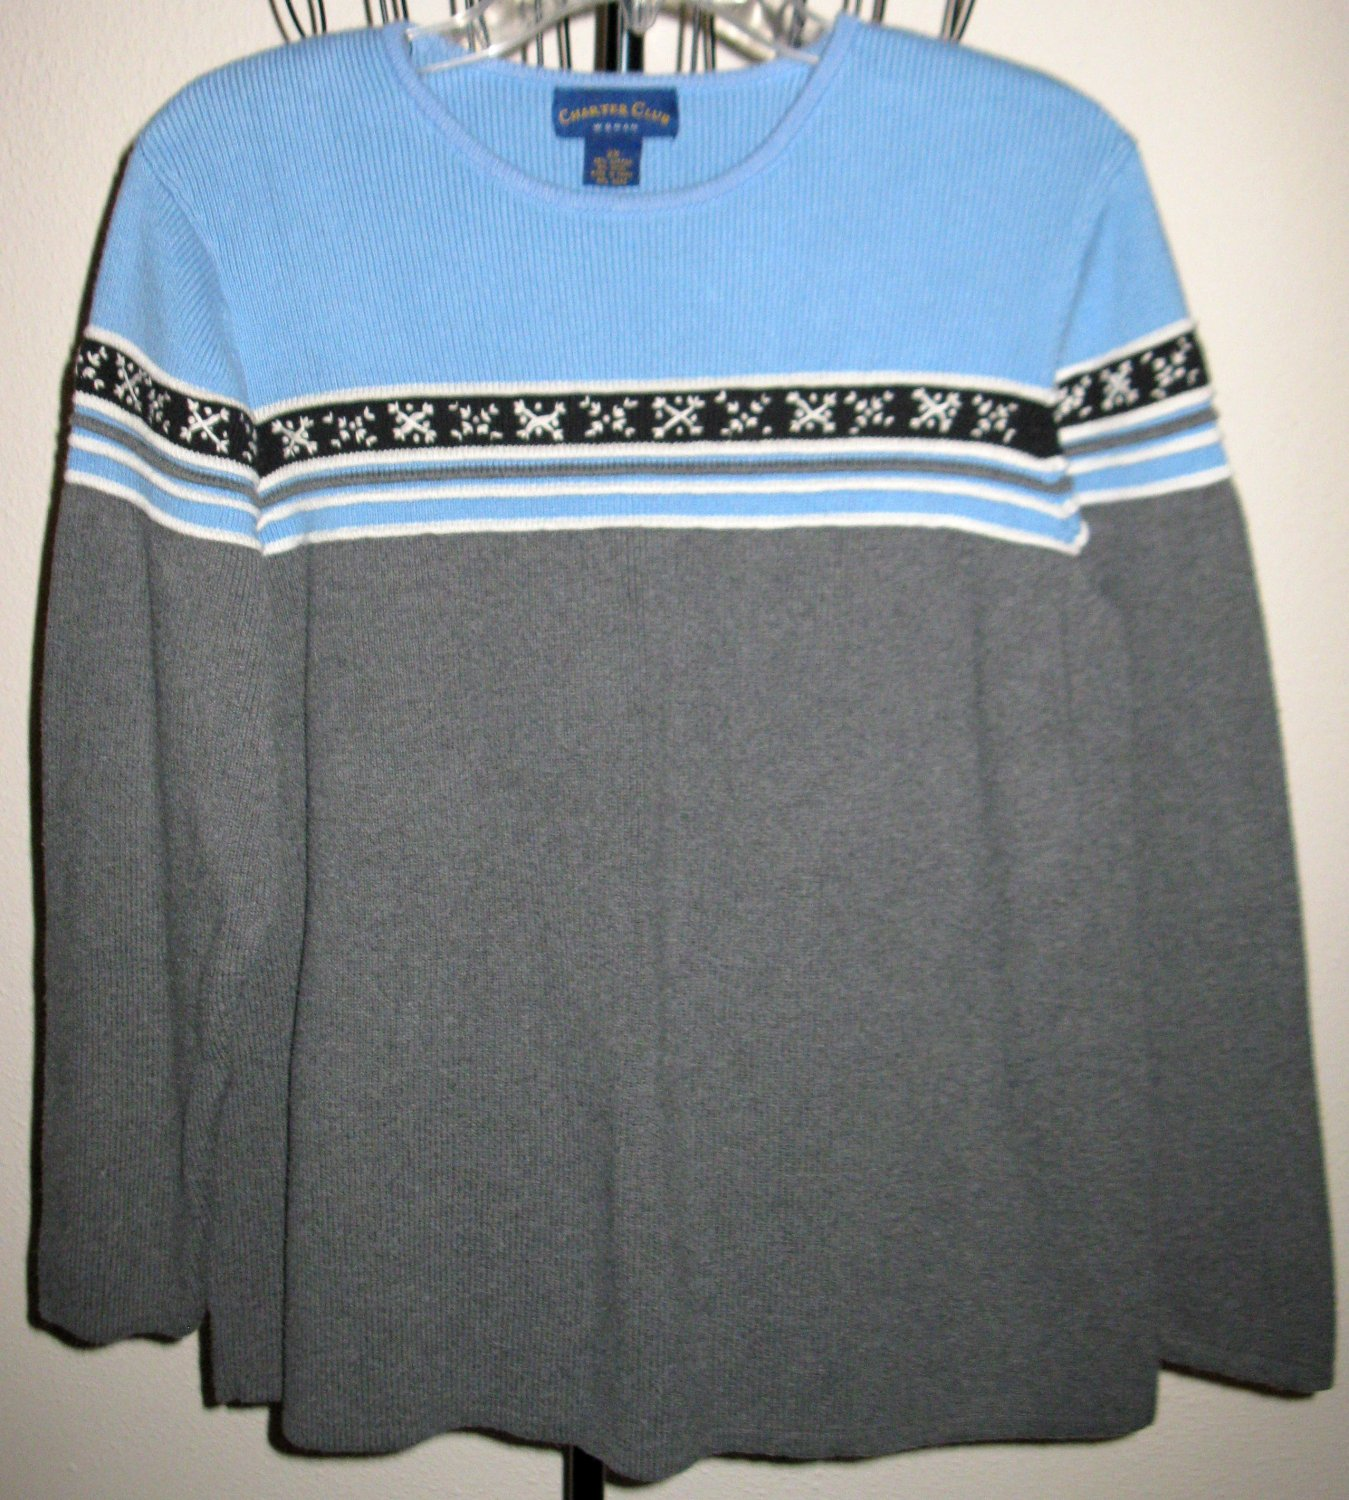 Beautiful Grey & Blue Sweater by Charter Club Size 2X Nice! #D393